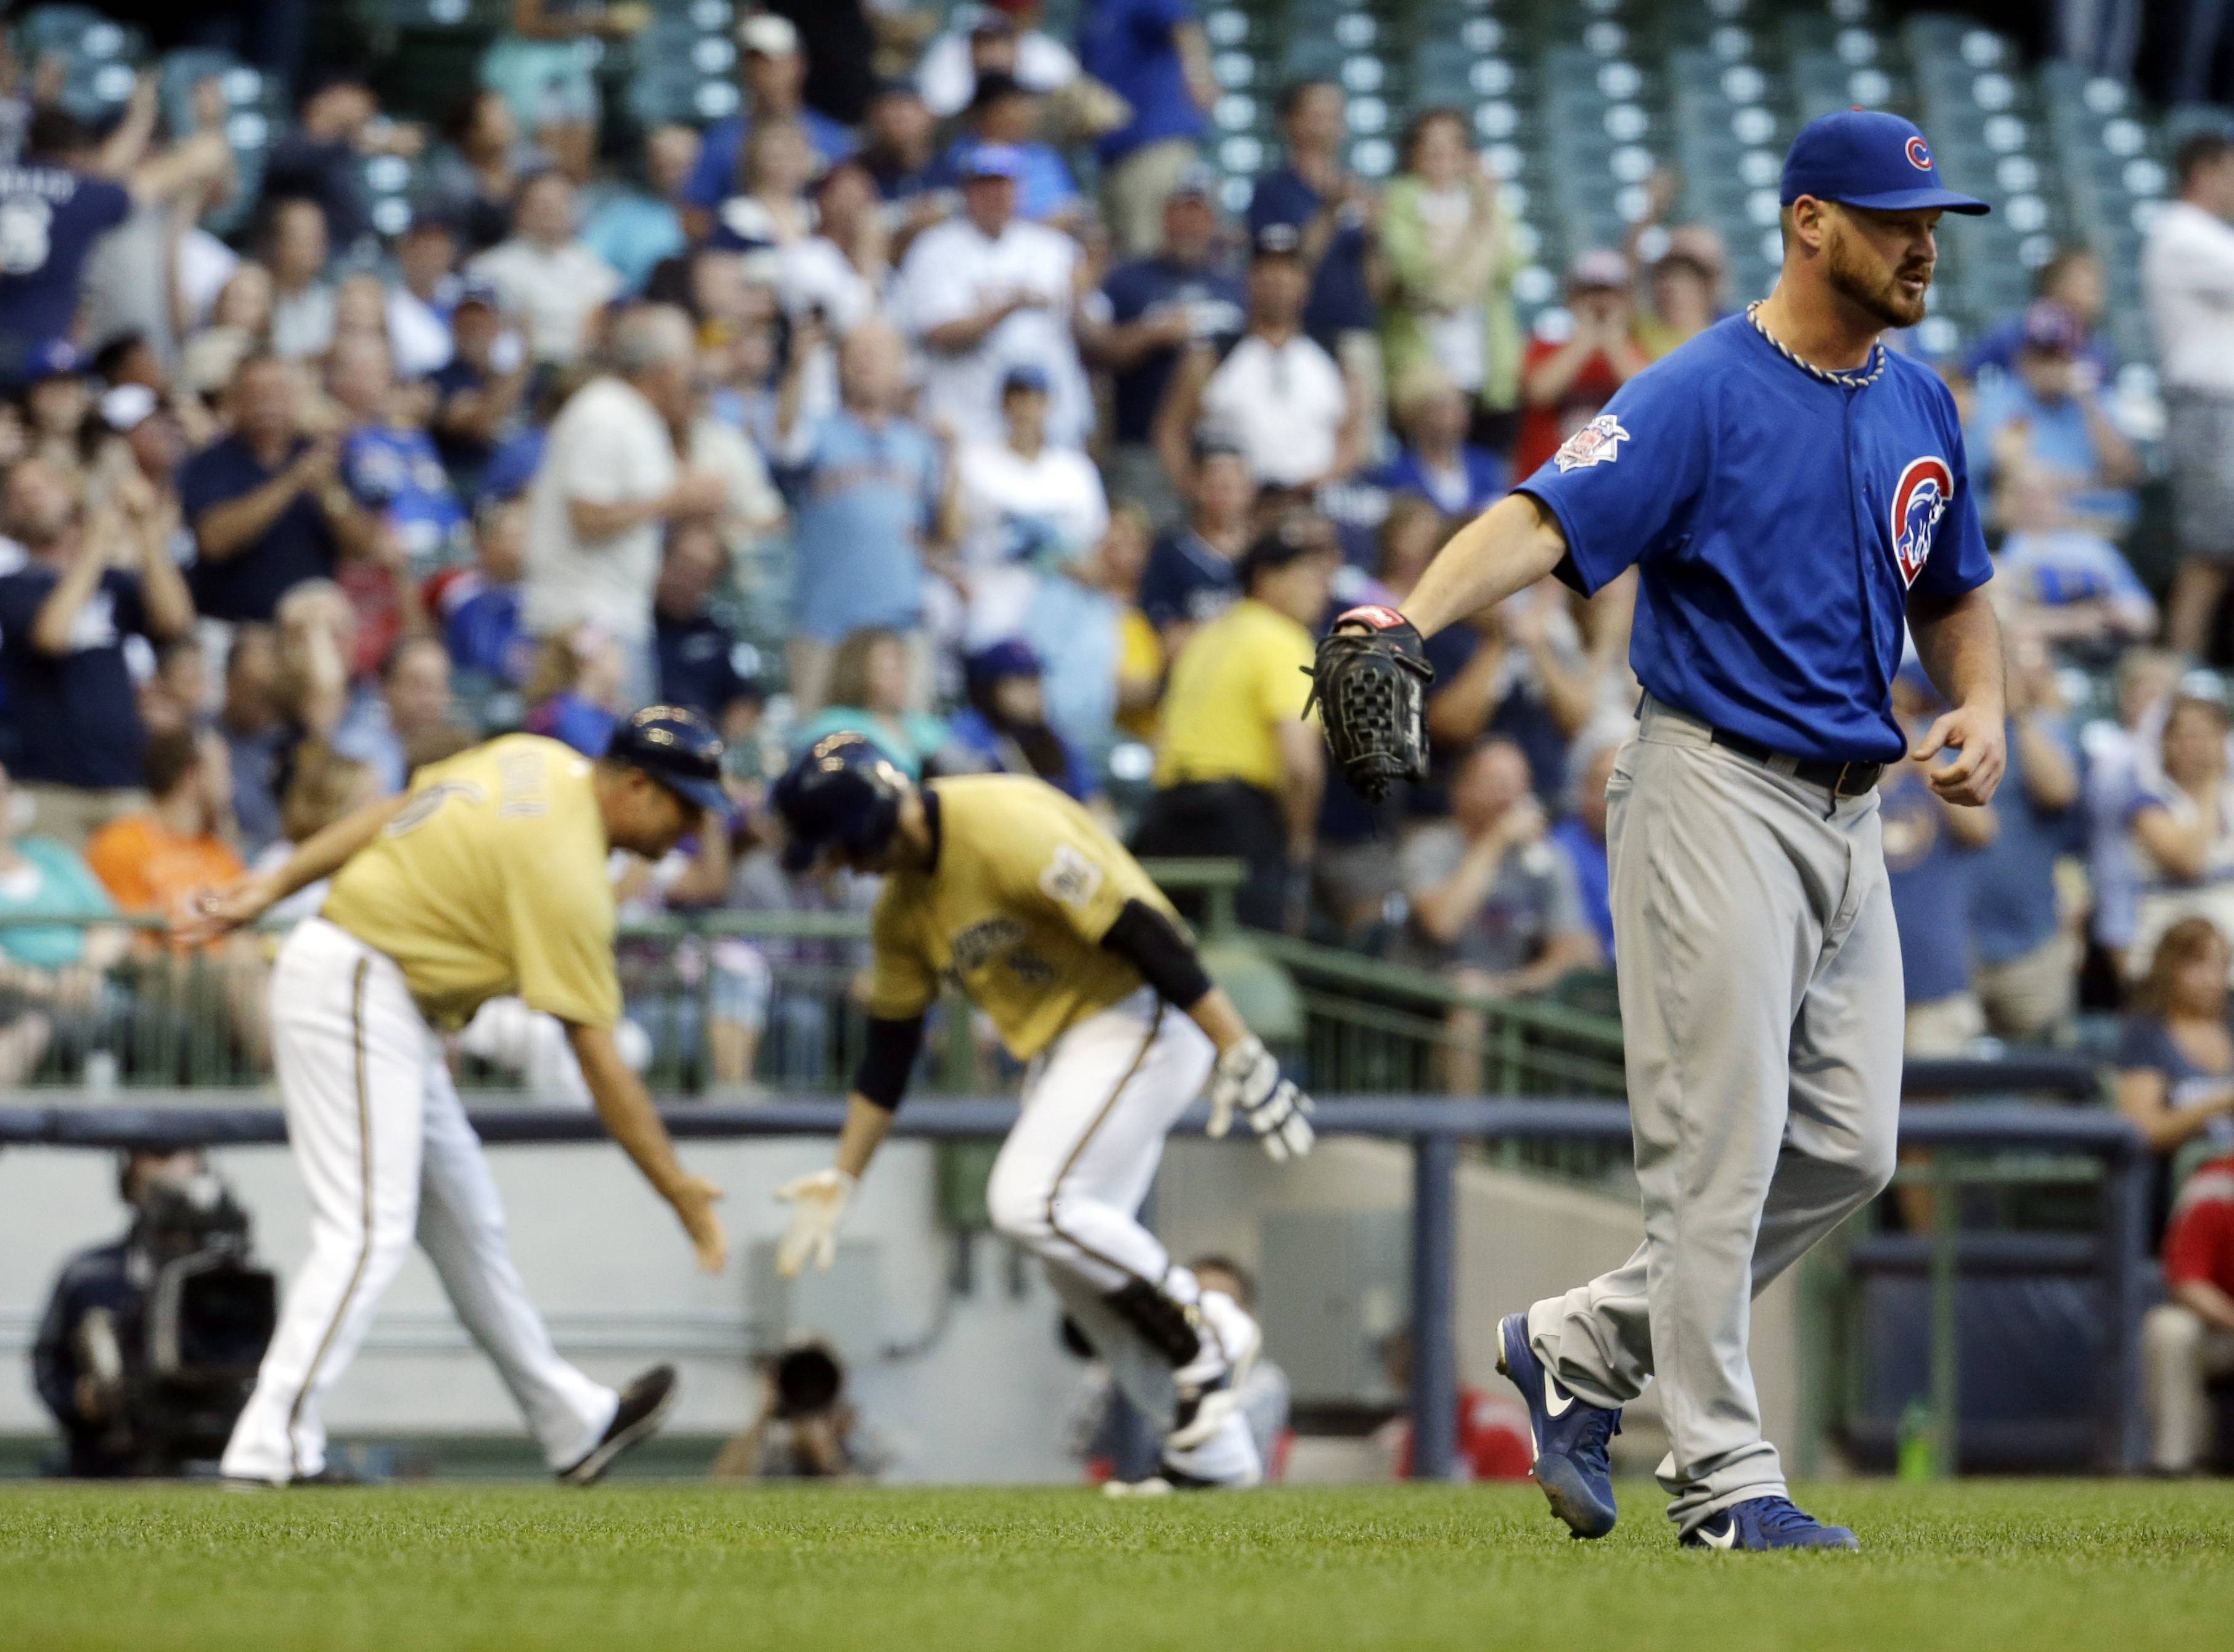 Cubs starting pitcher Travis Wood, right, winces as Milwaukee Brewers' Ryan Braun rounds the bases after Braun hit a two-run home run during the first inning Friday. Wood turned in his shortest outing of the season.